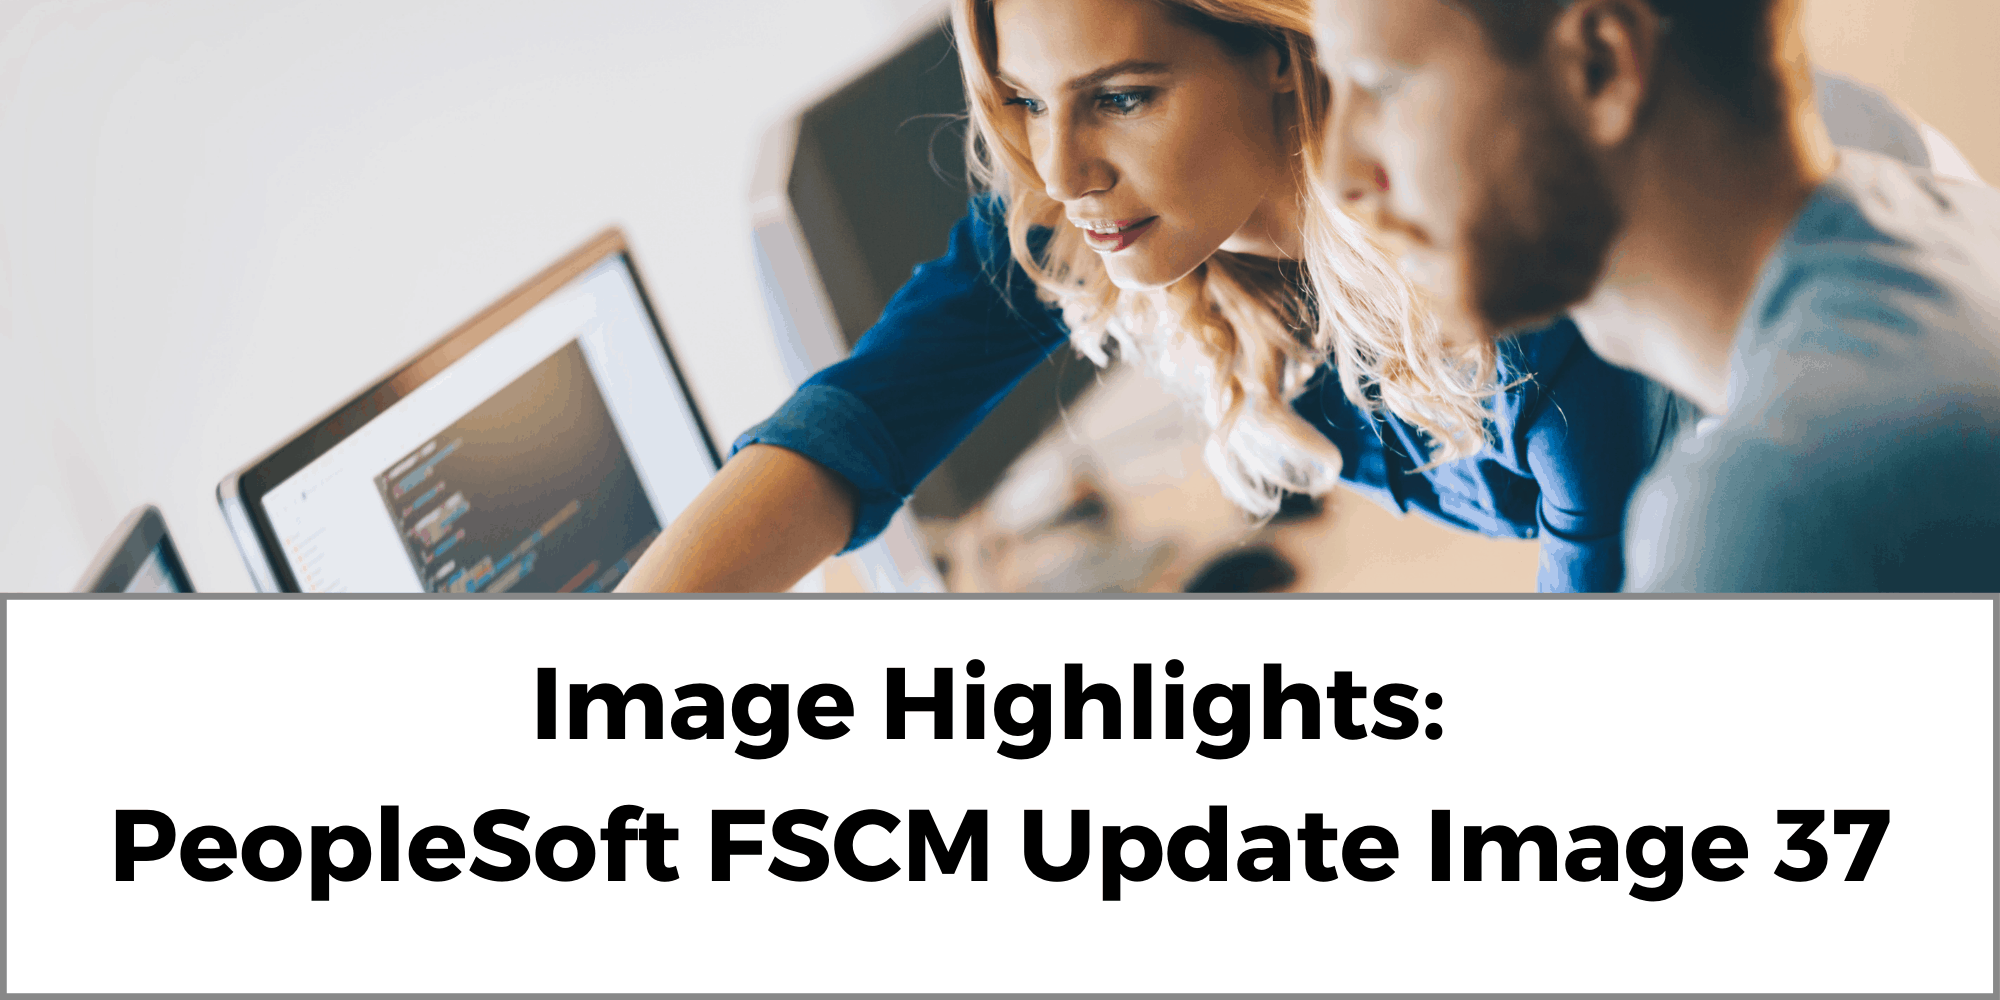 Image Highlights: PeopleSoft FSCM Update Image 37